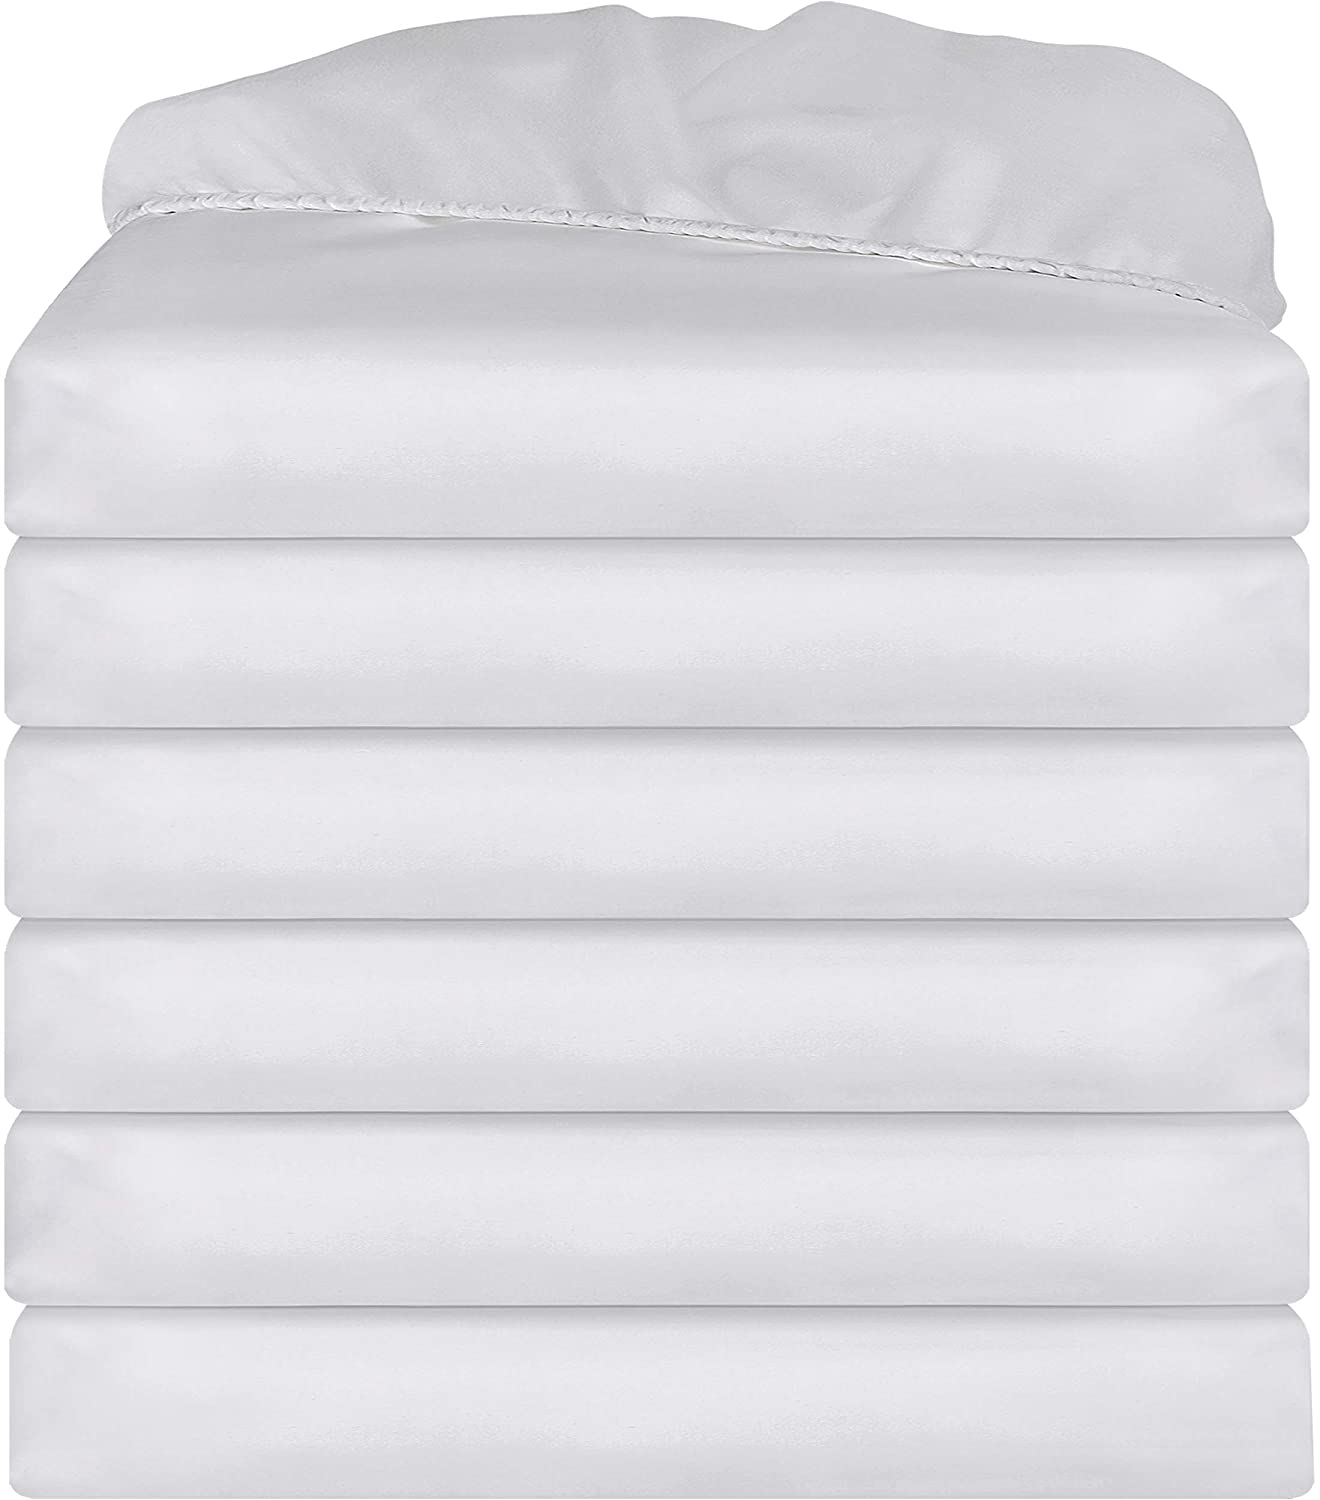 Utopia Bedding Twin Fitted Sheet - White (6 Pack)